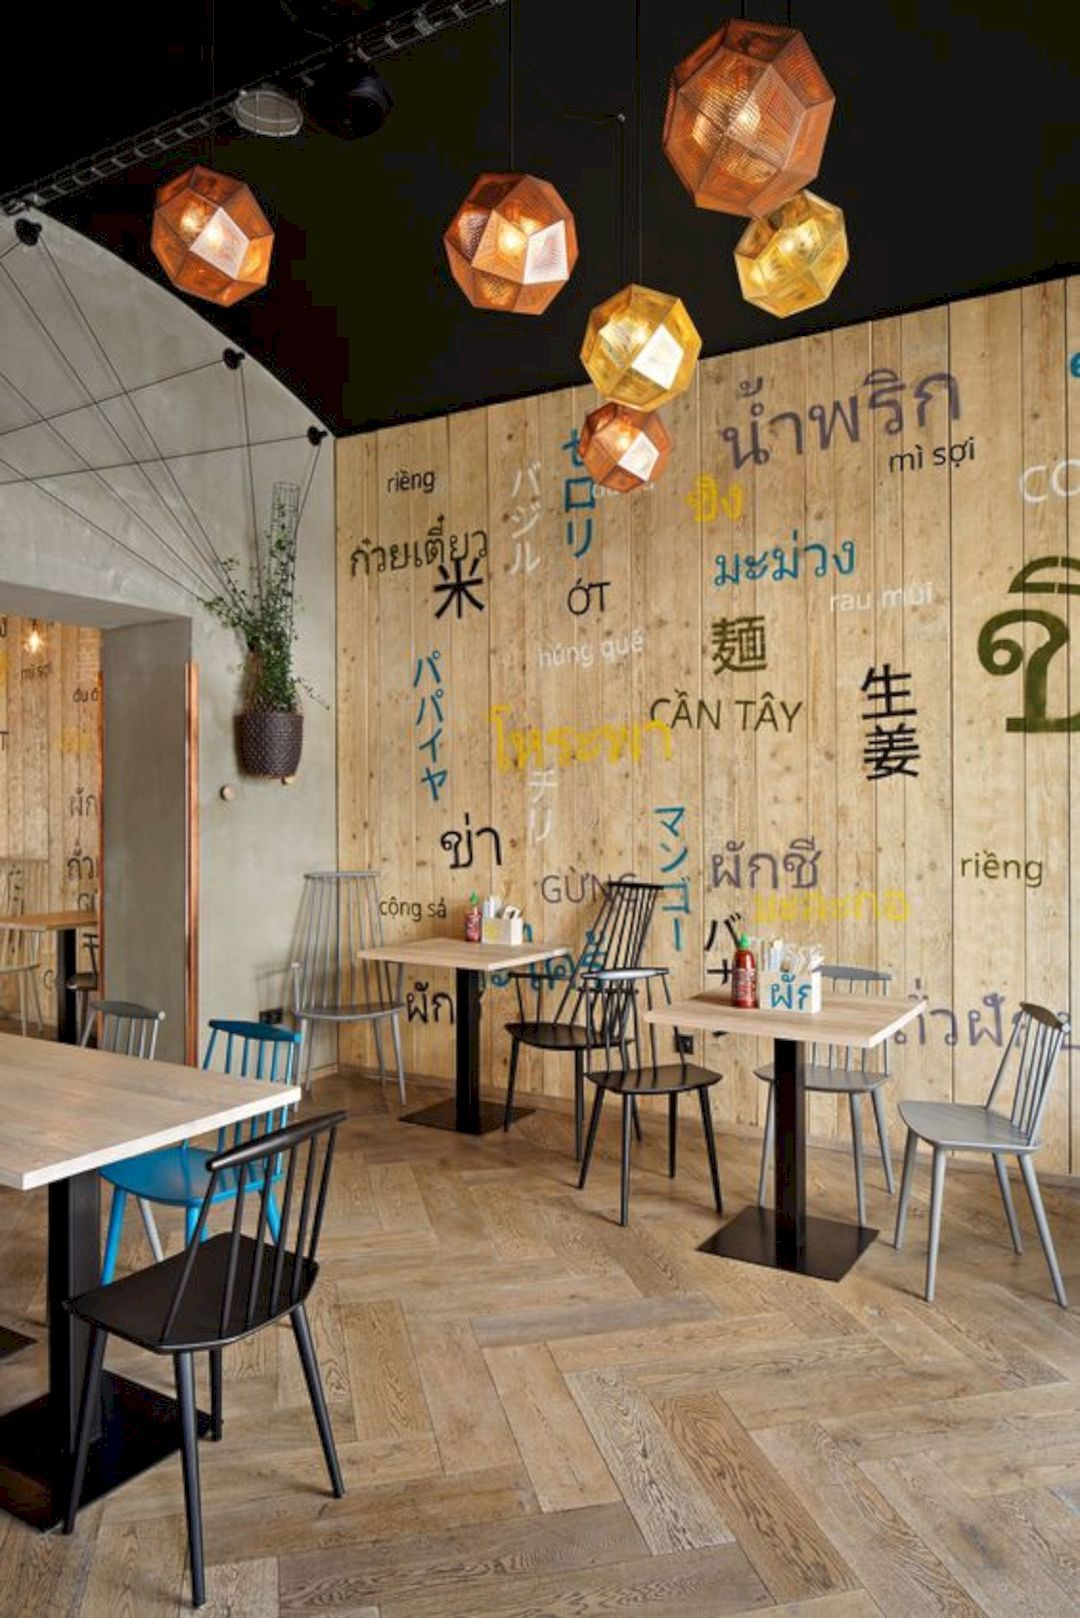 15 Stylish Interior Design Ideas For Thai Restaurant Thai Food